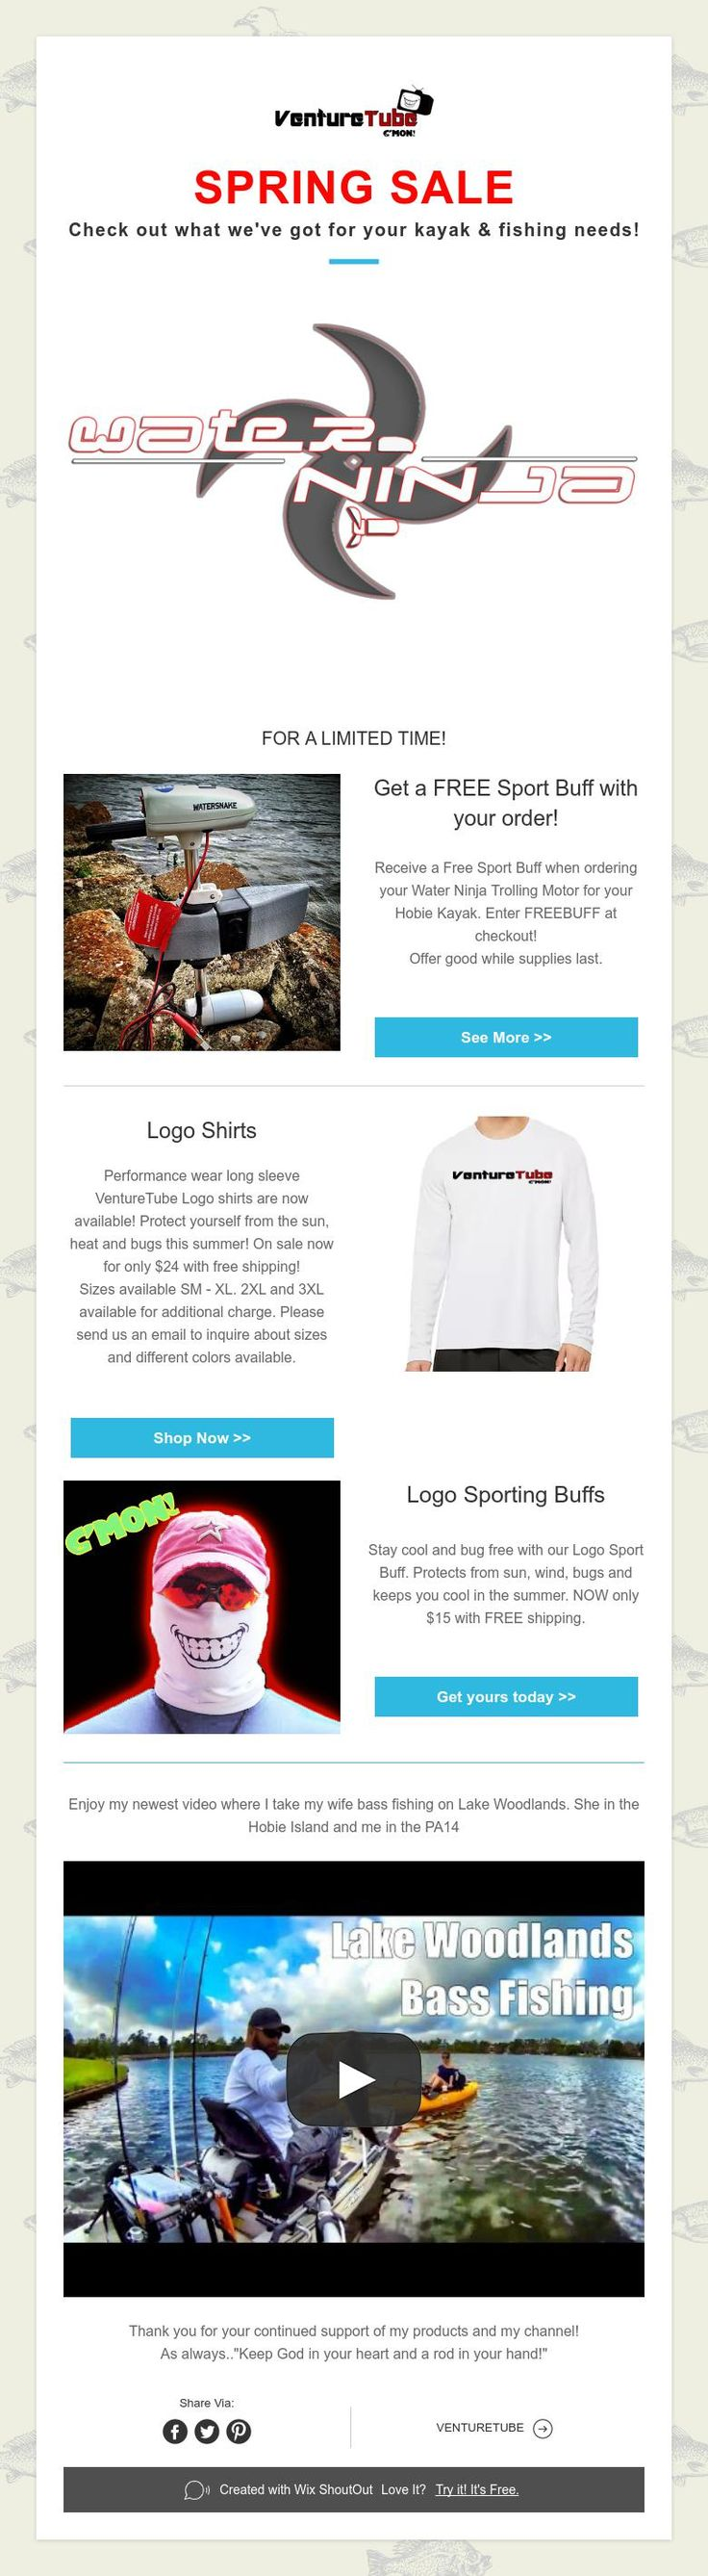 SPRING SALE  Check out what we've got for your kayak & fishing needs!